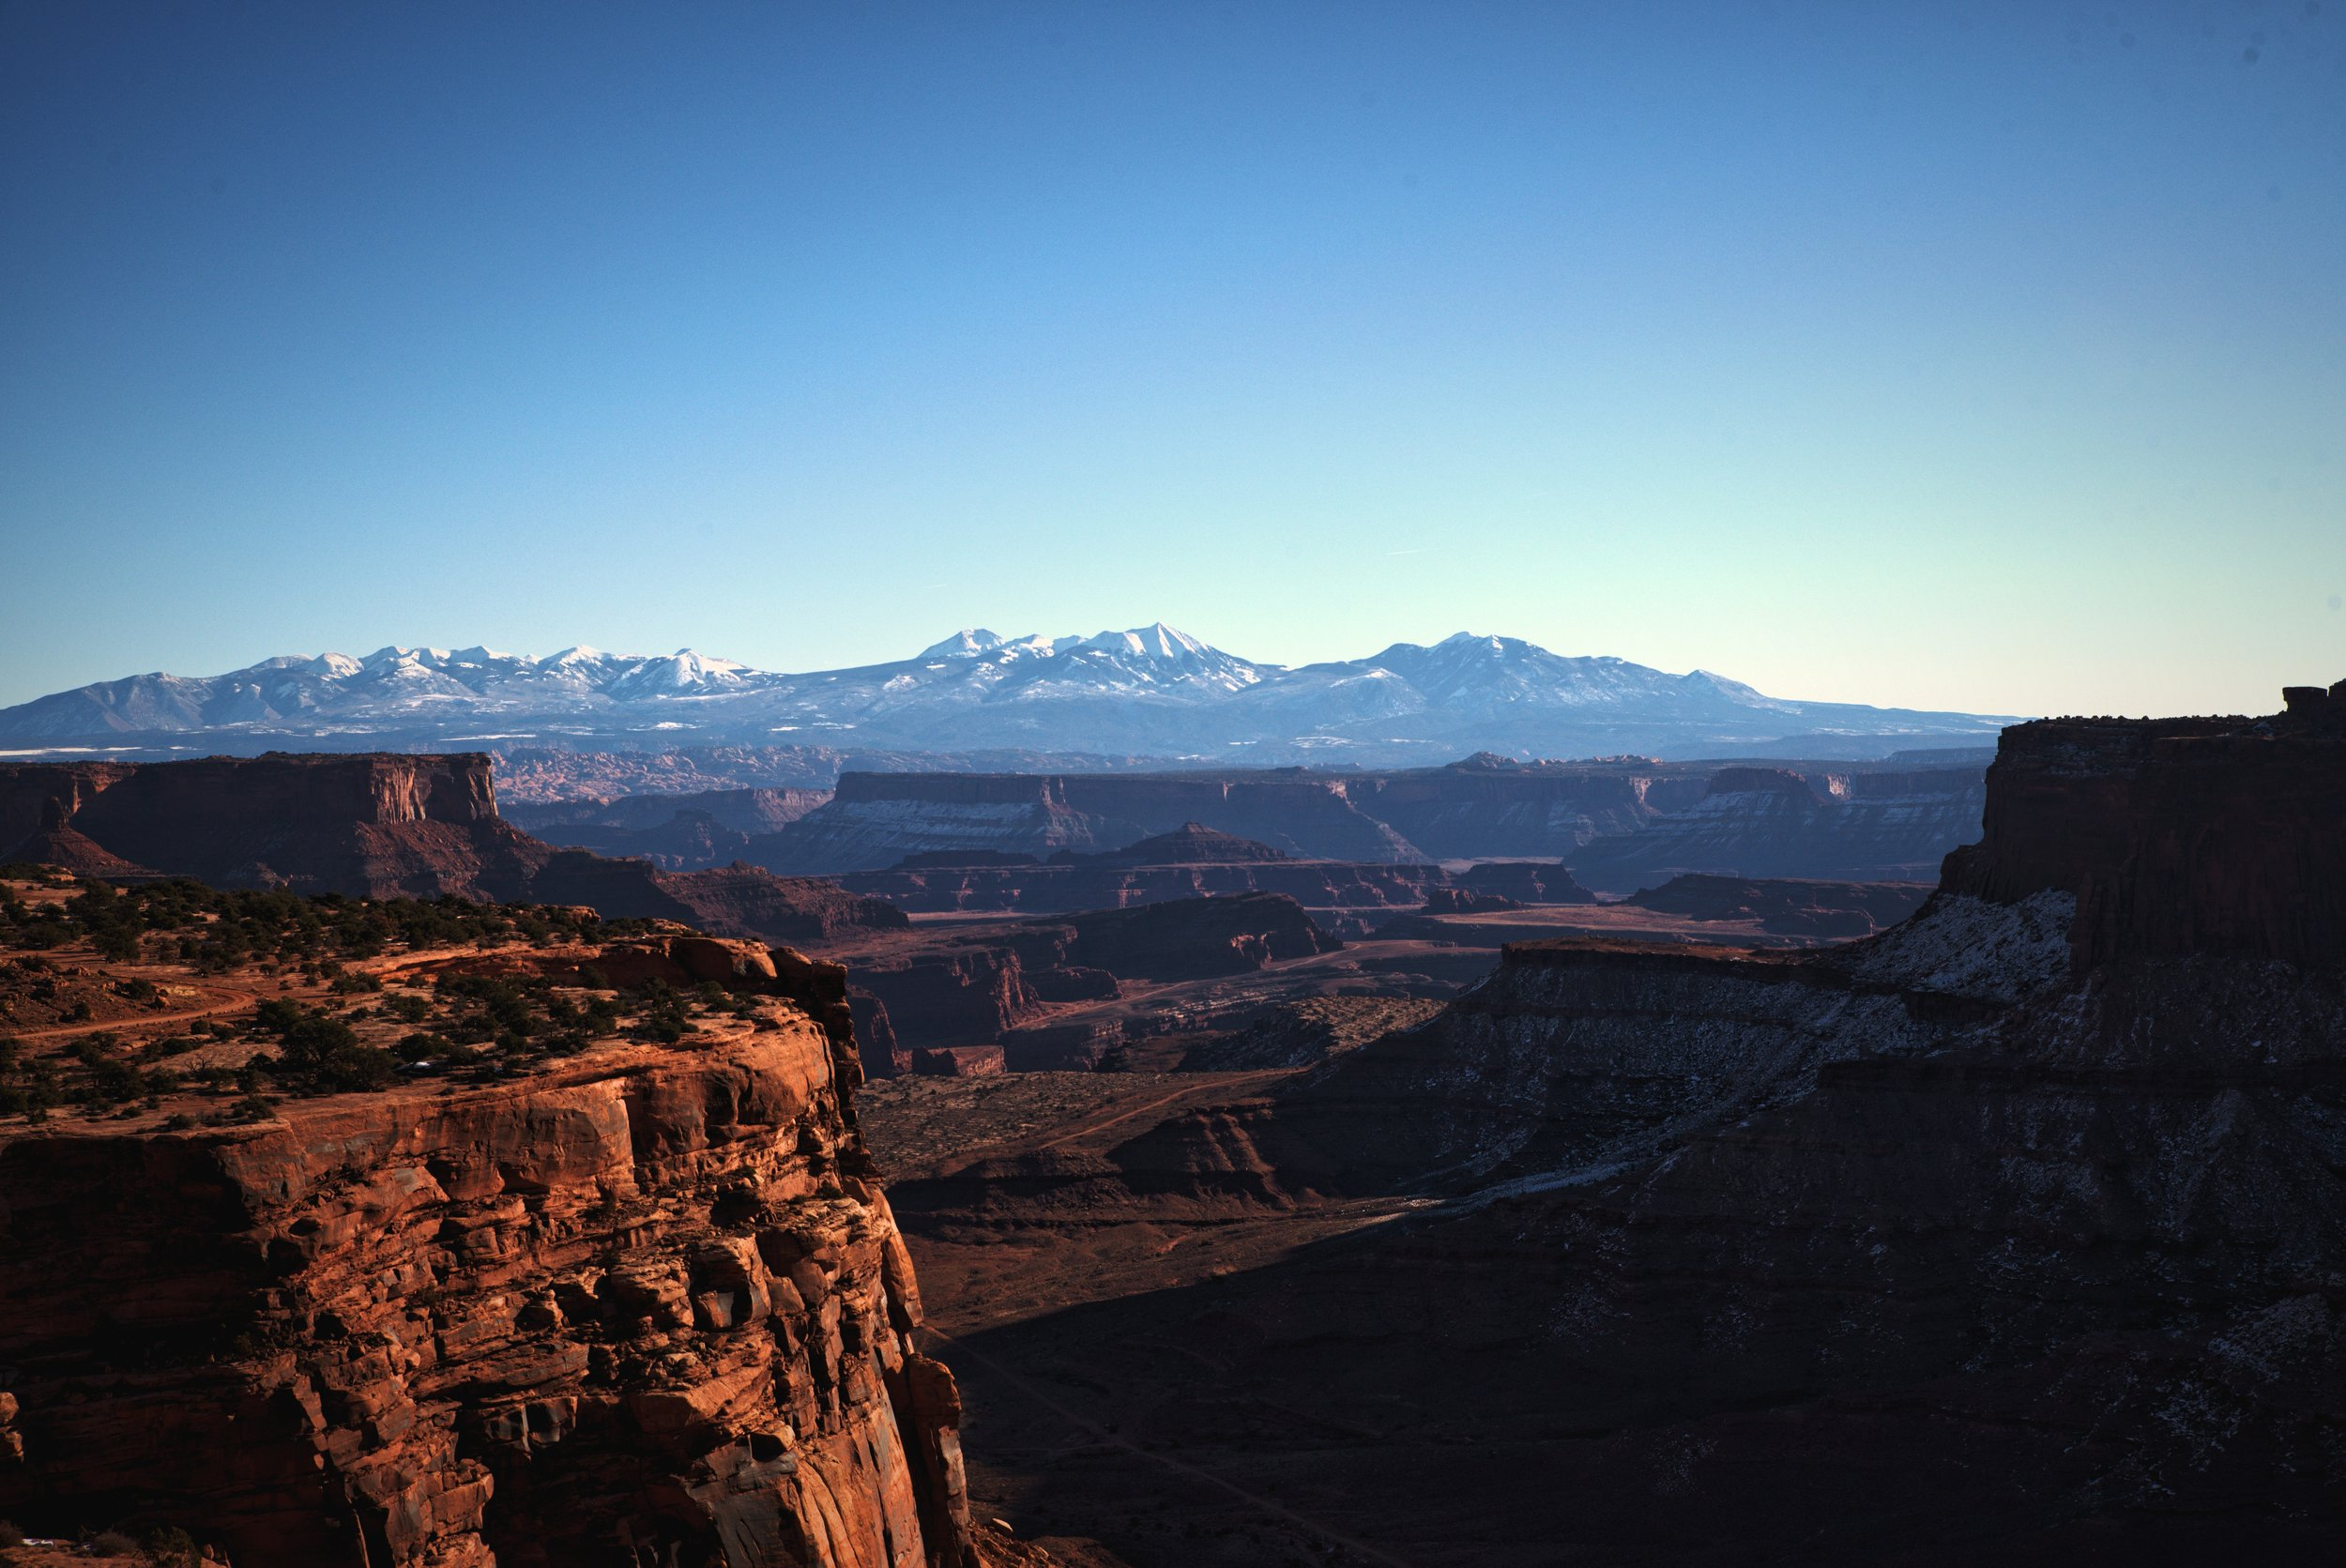 The landscape of Canyonlands will have you questioning whether you are on Earth or on Mars.